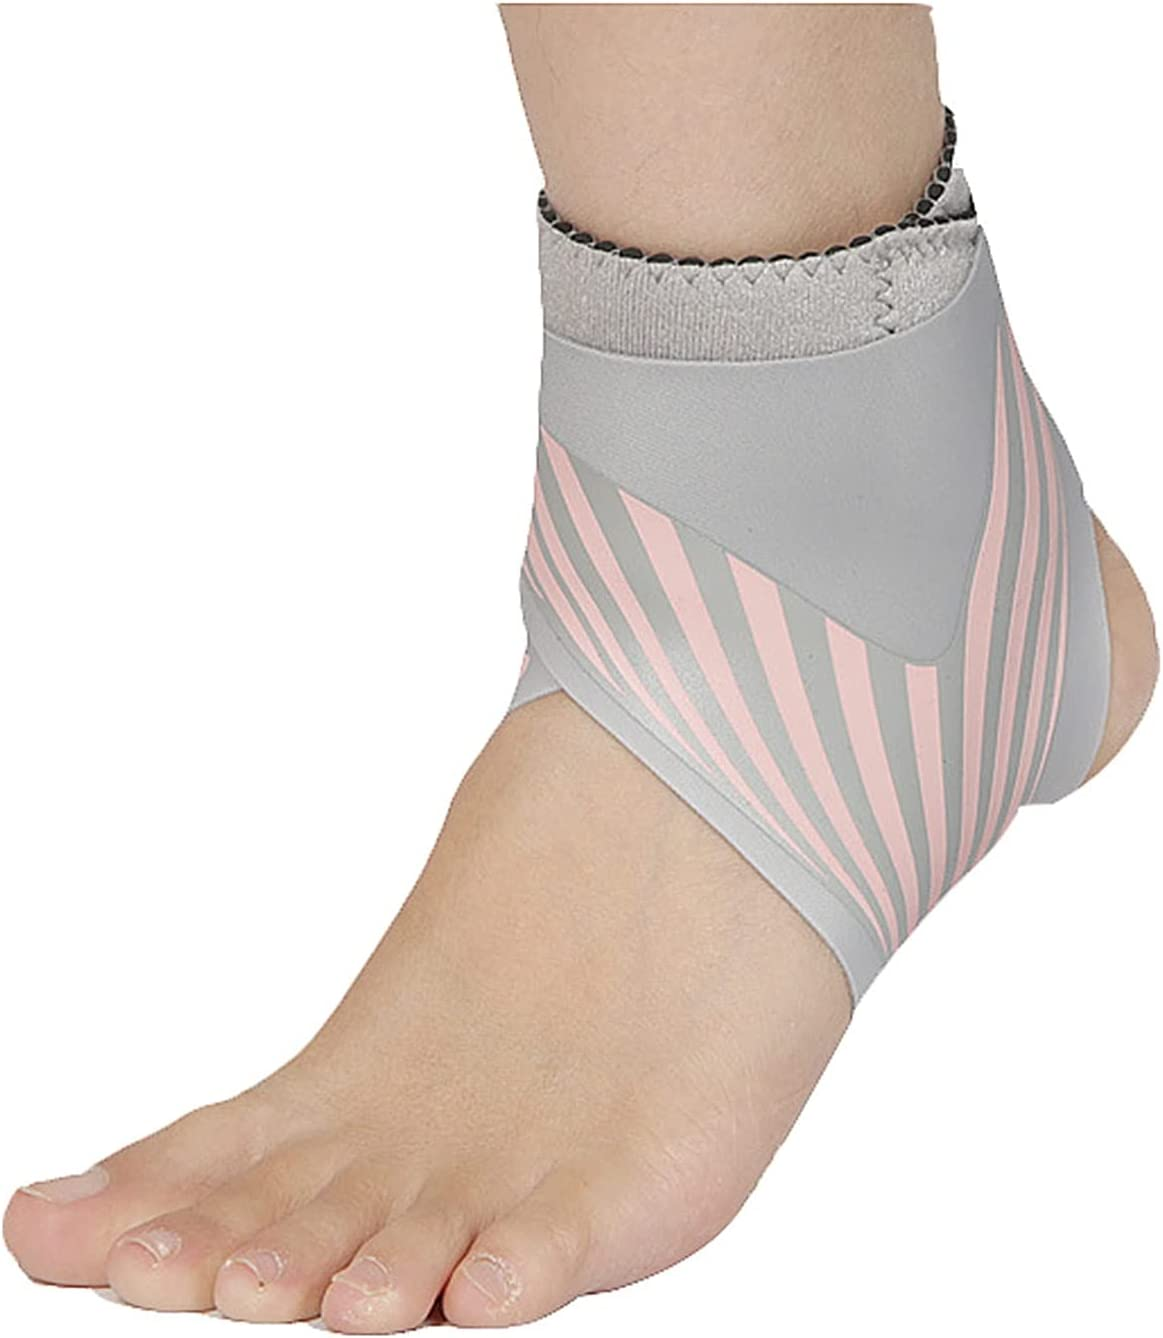 XXFI Ankle Support Stabilizer Foot 2021 new Suitable for Brace Sp Max 90% OFF